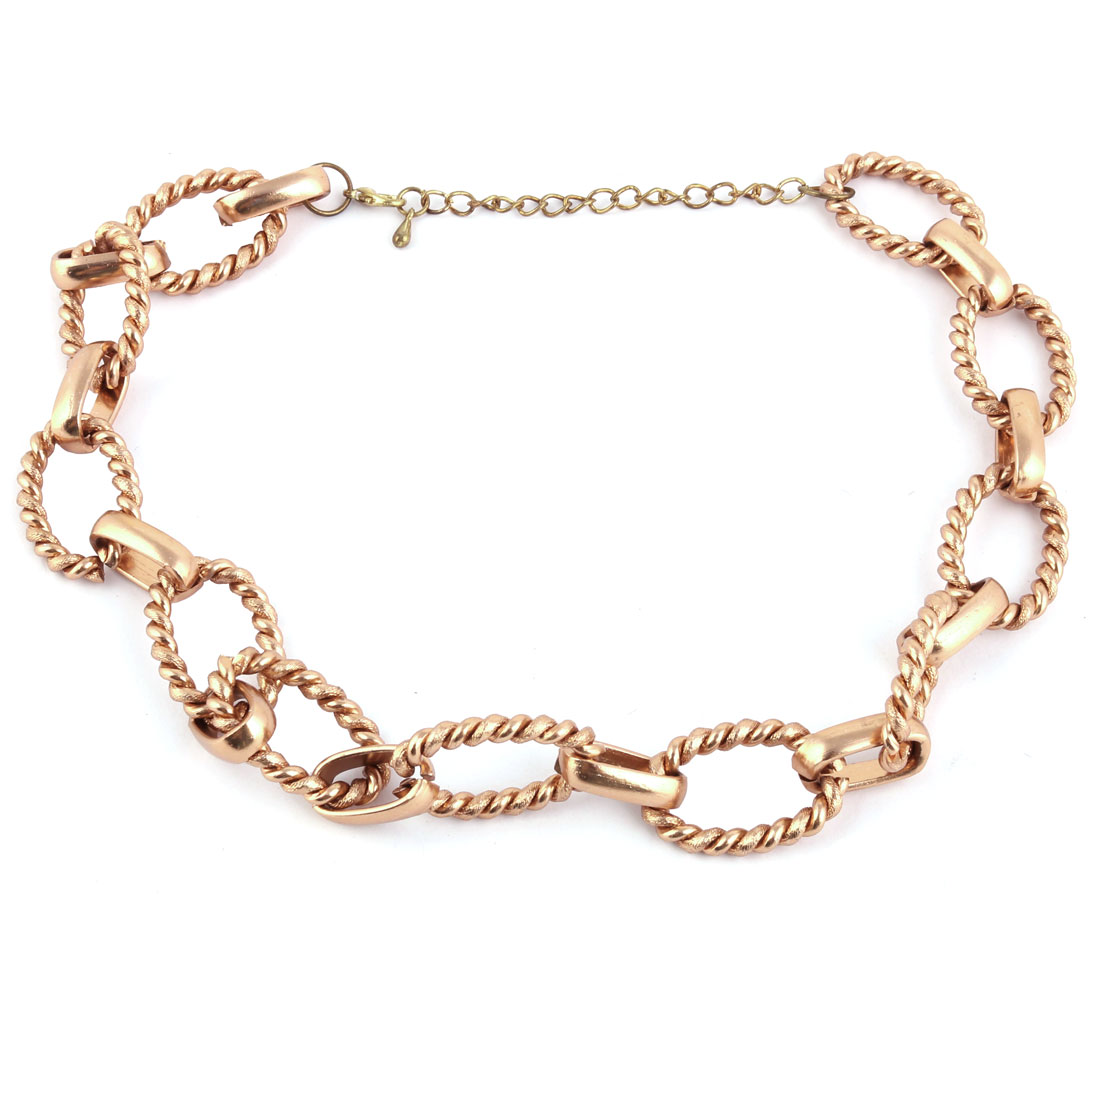 Unisex Spiral Oval Shape Ring Adjustable Neck Chain Necklace Decor Copper Tone